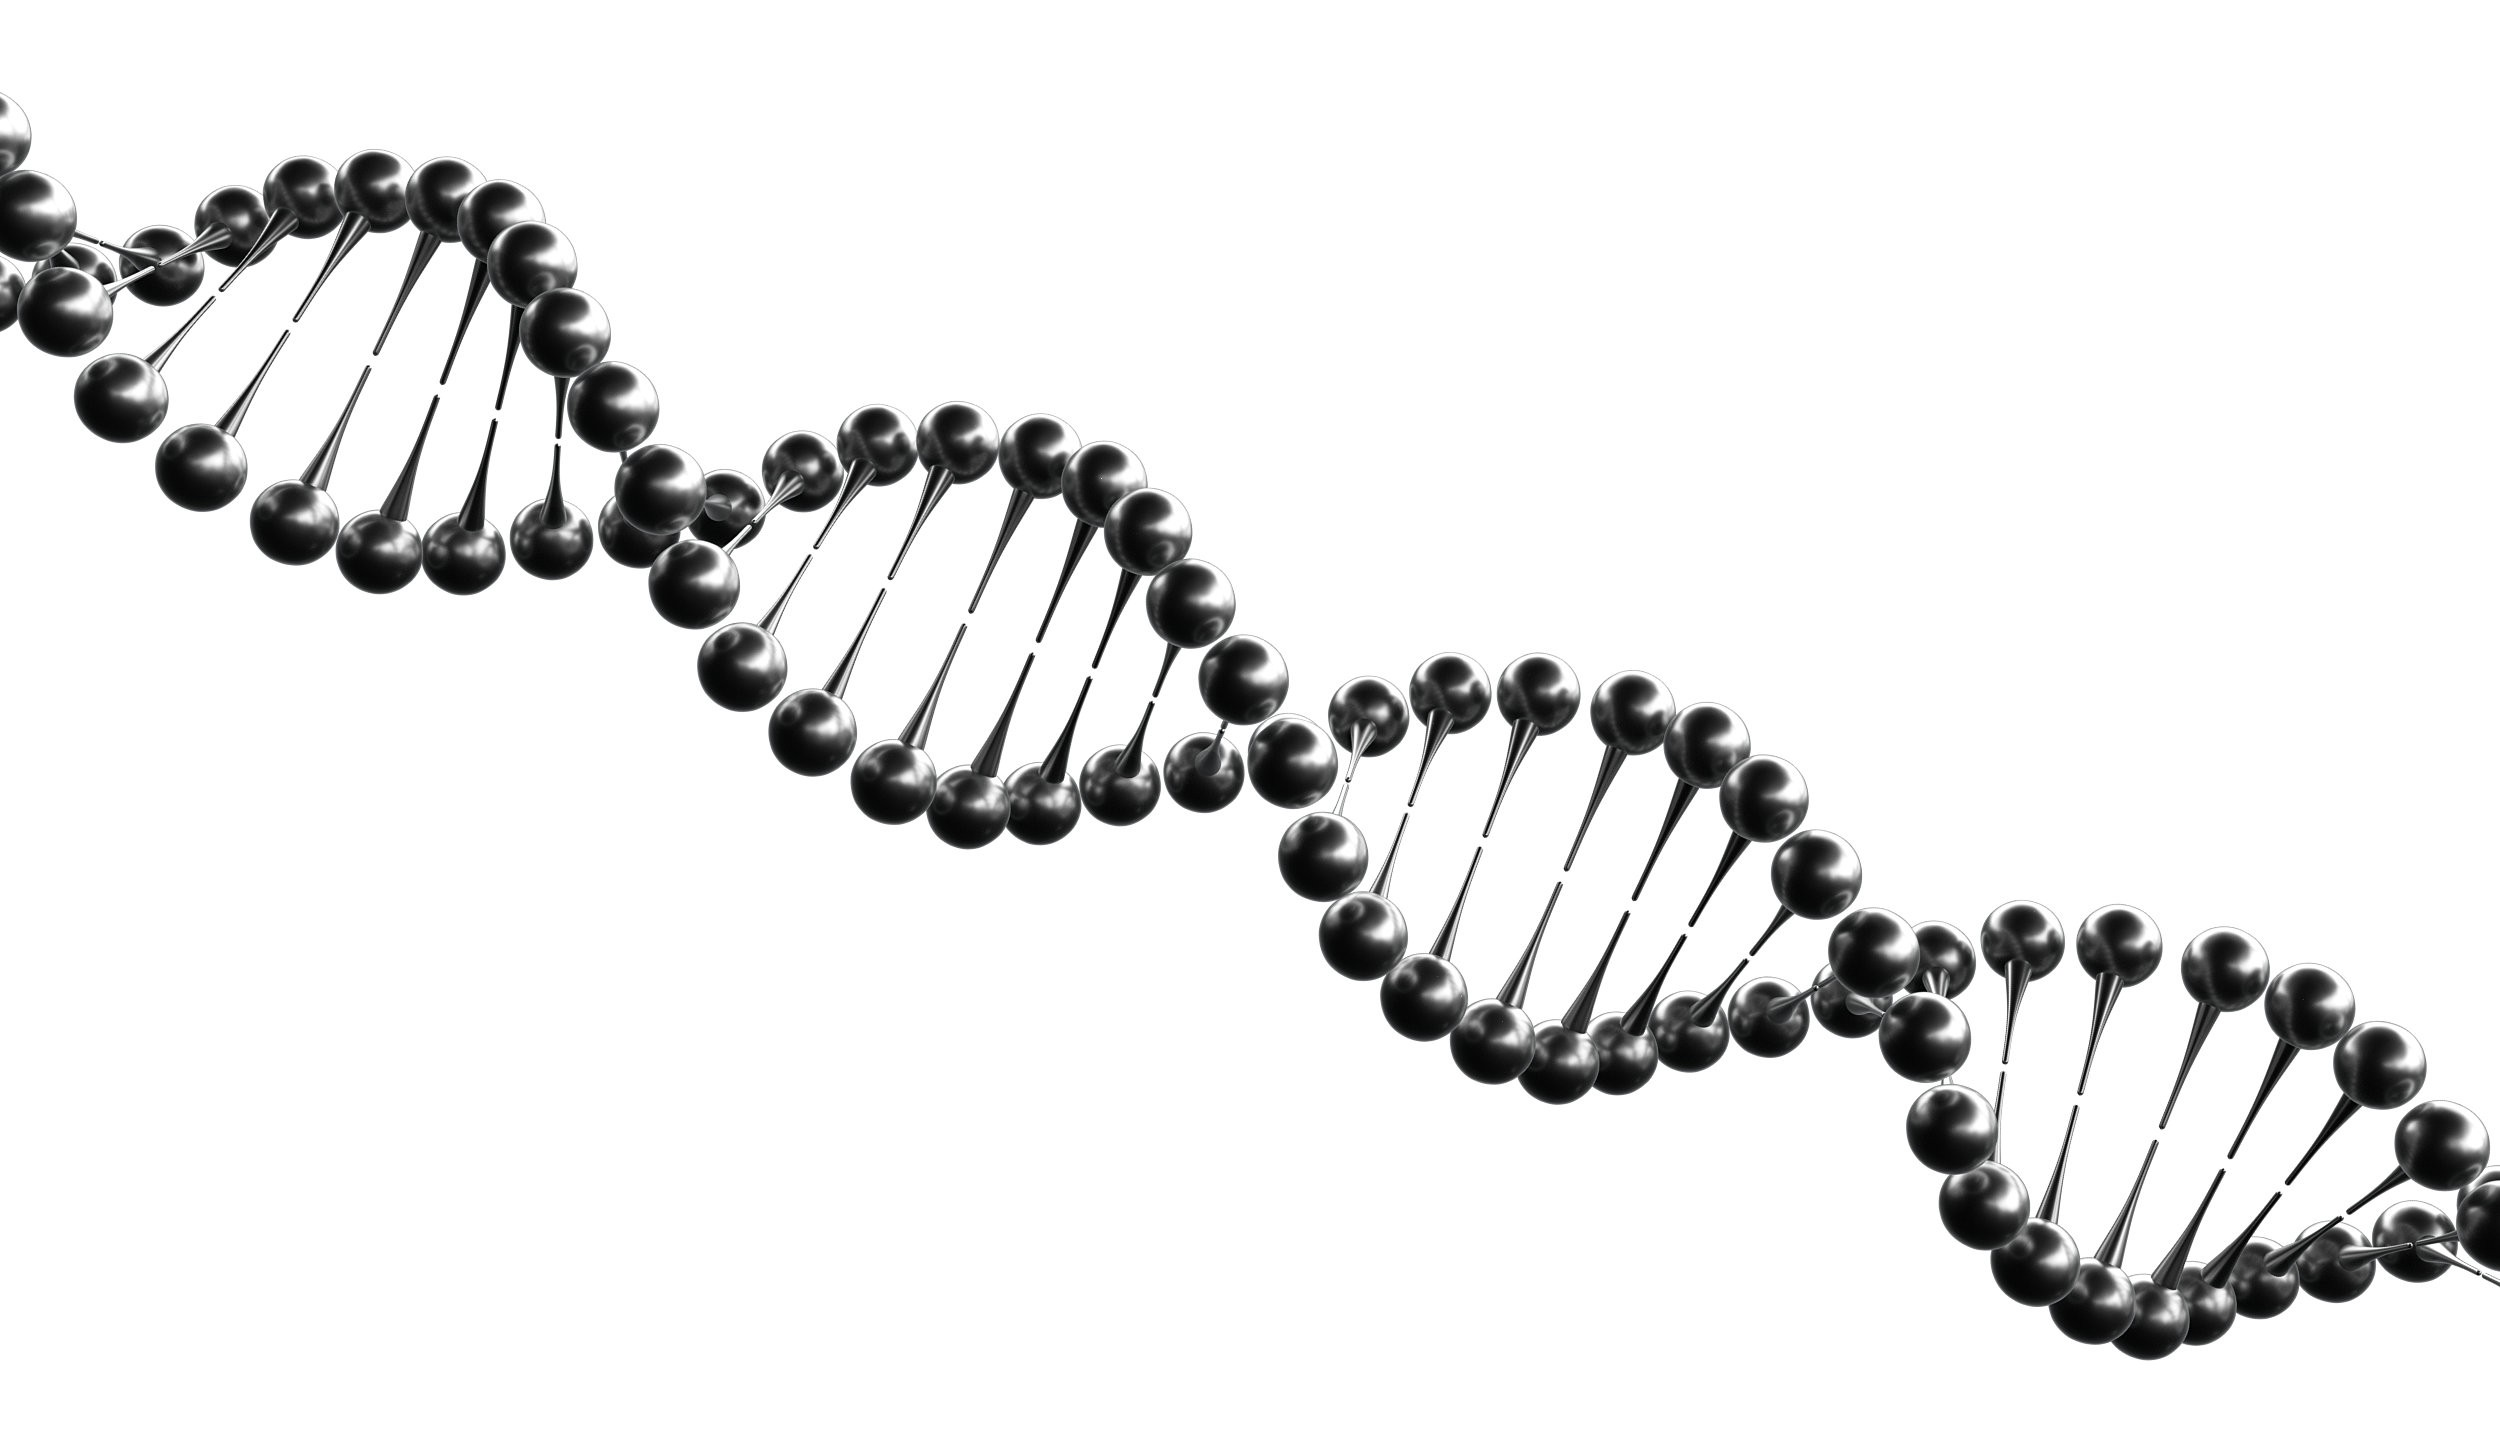 Fun, Creative Double Helix DNA Graphic